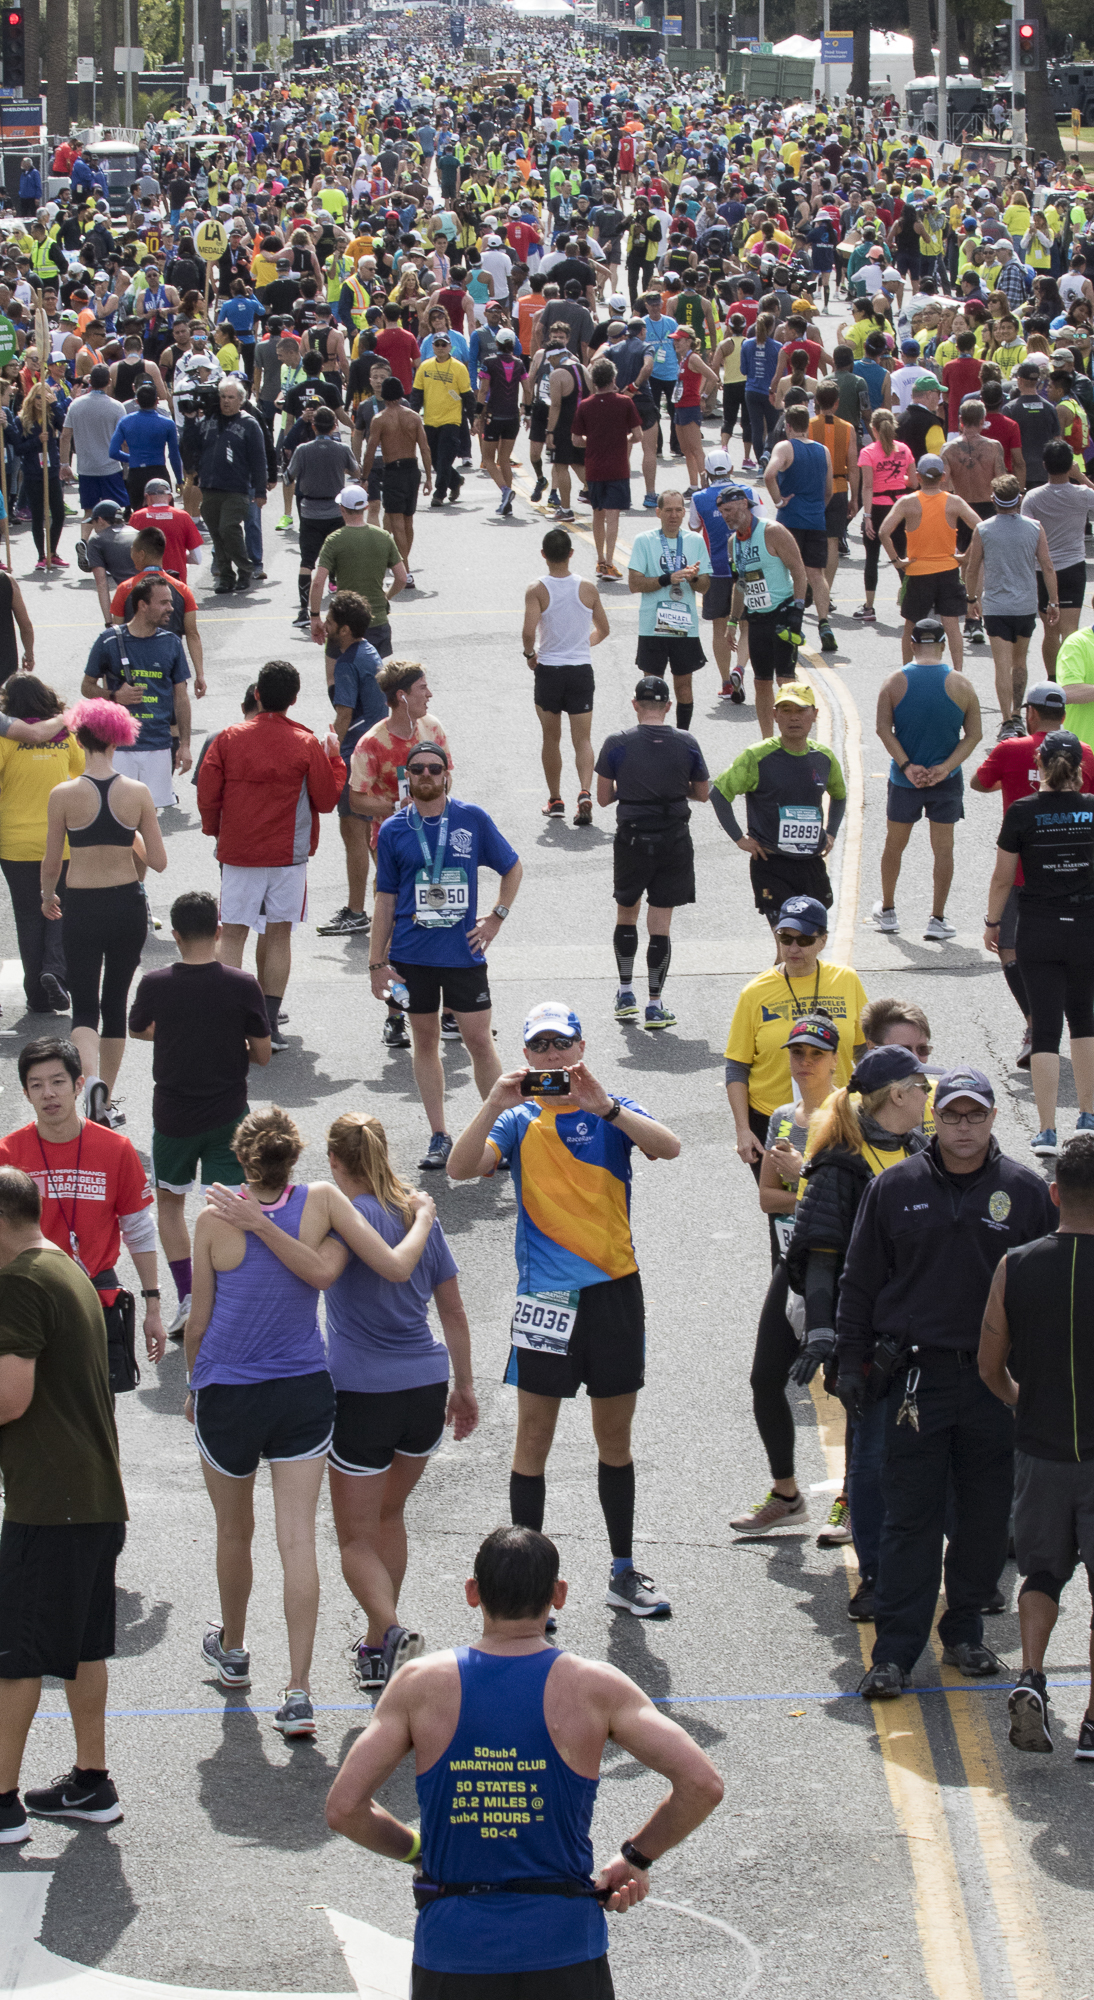 Mike Sohaskey takes a video recording on his cell phone after finishing the 2018 Los Angeles Marathon on March 18, 2018 in Santa Monica, California. (Zane Meyer-Thornton/Corsair Photo)